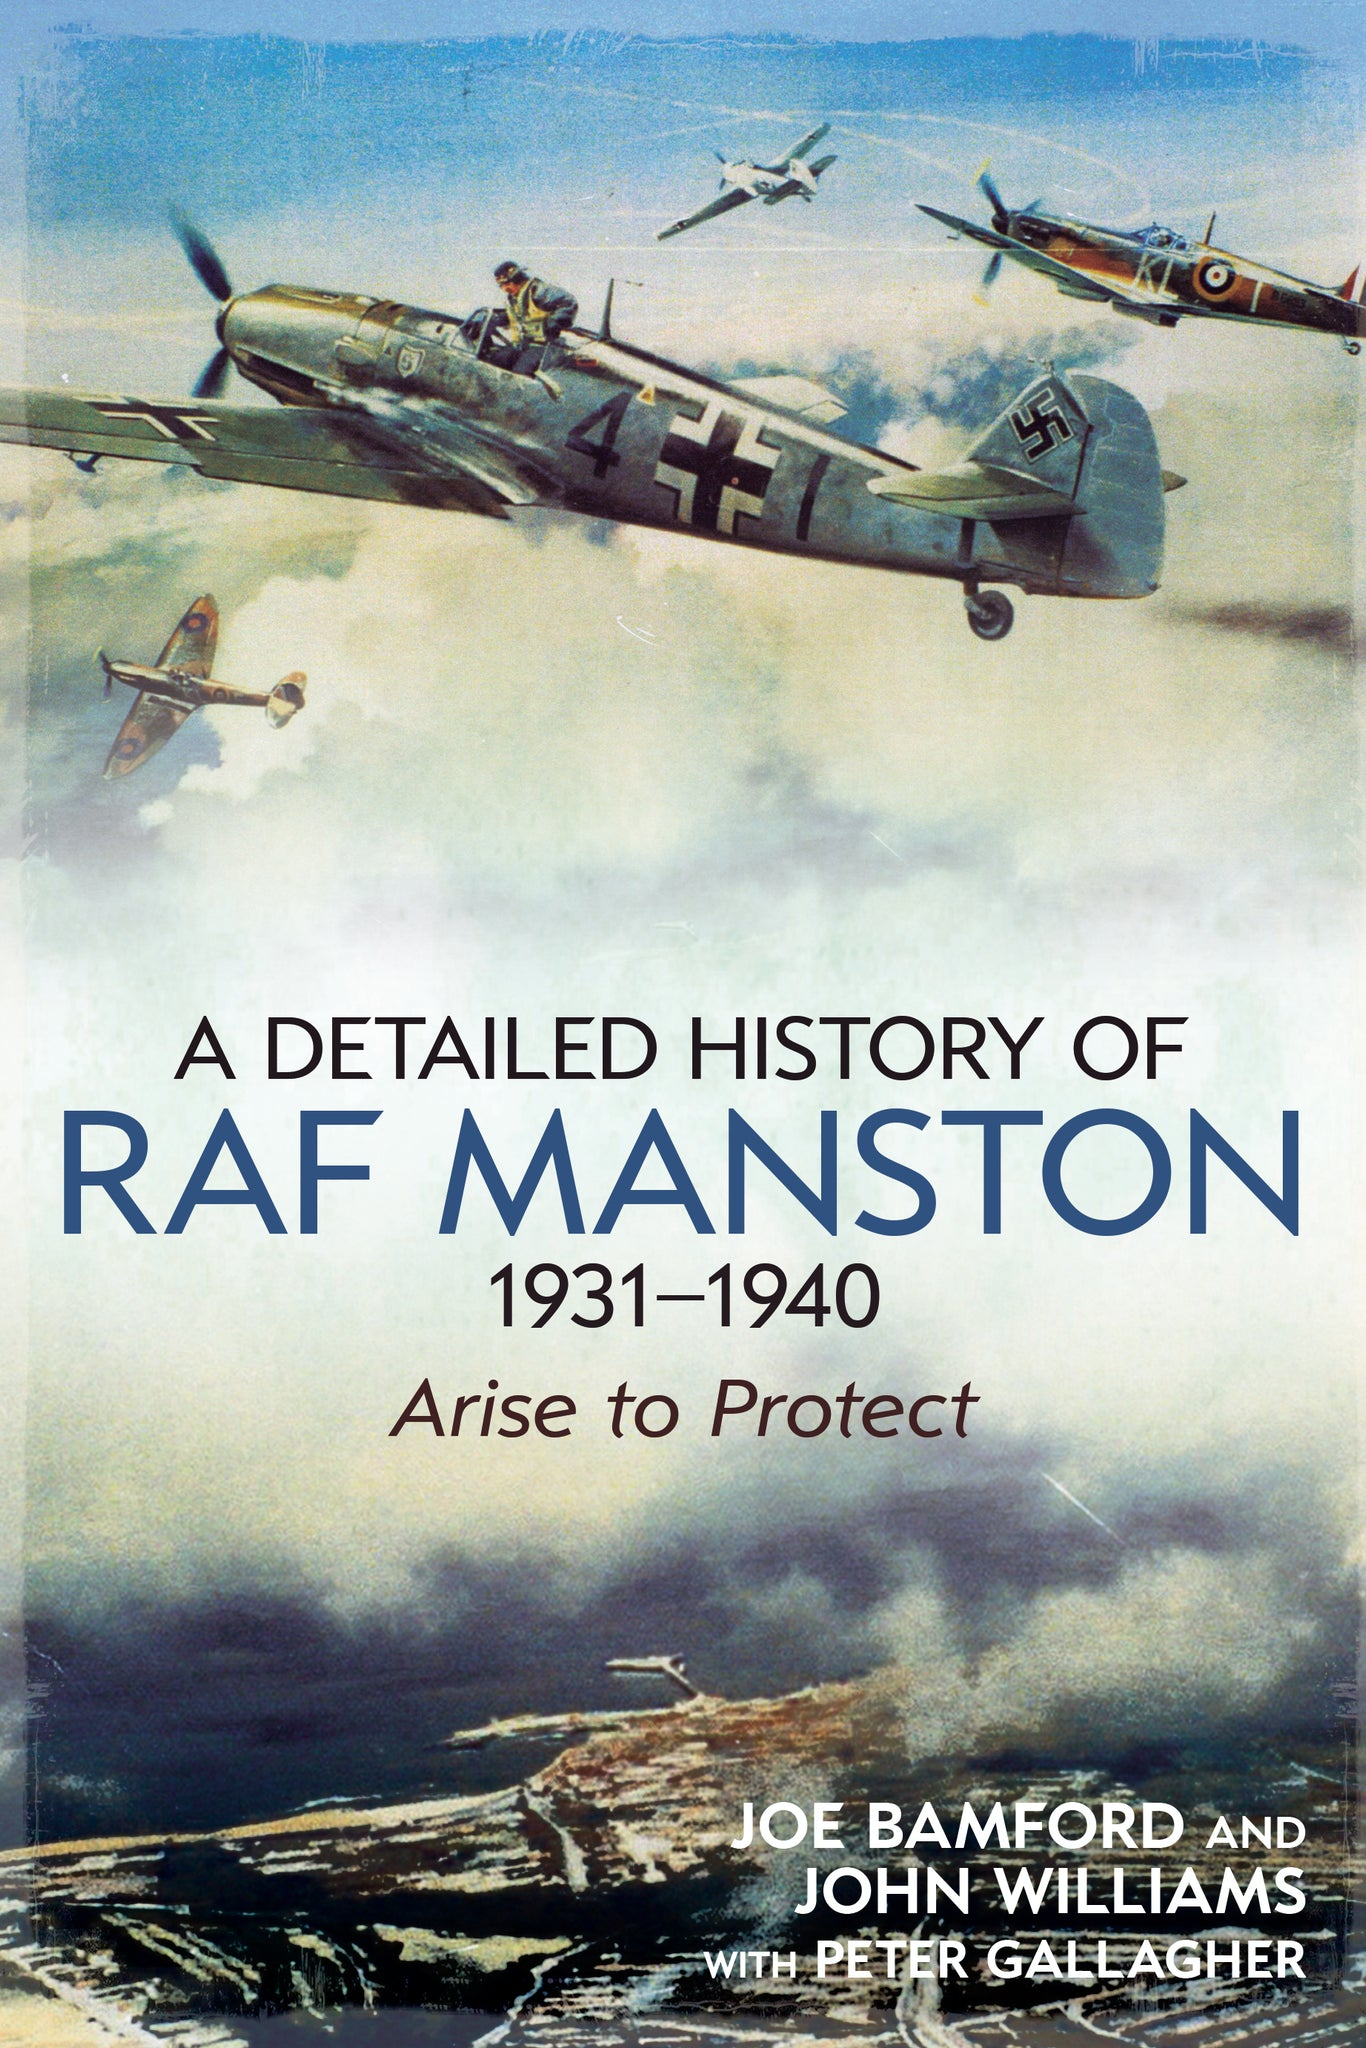 A Detailed History of RAF Manston - available now from Fonthill Media